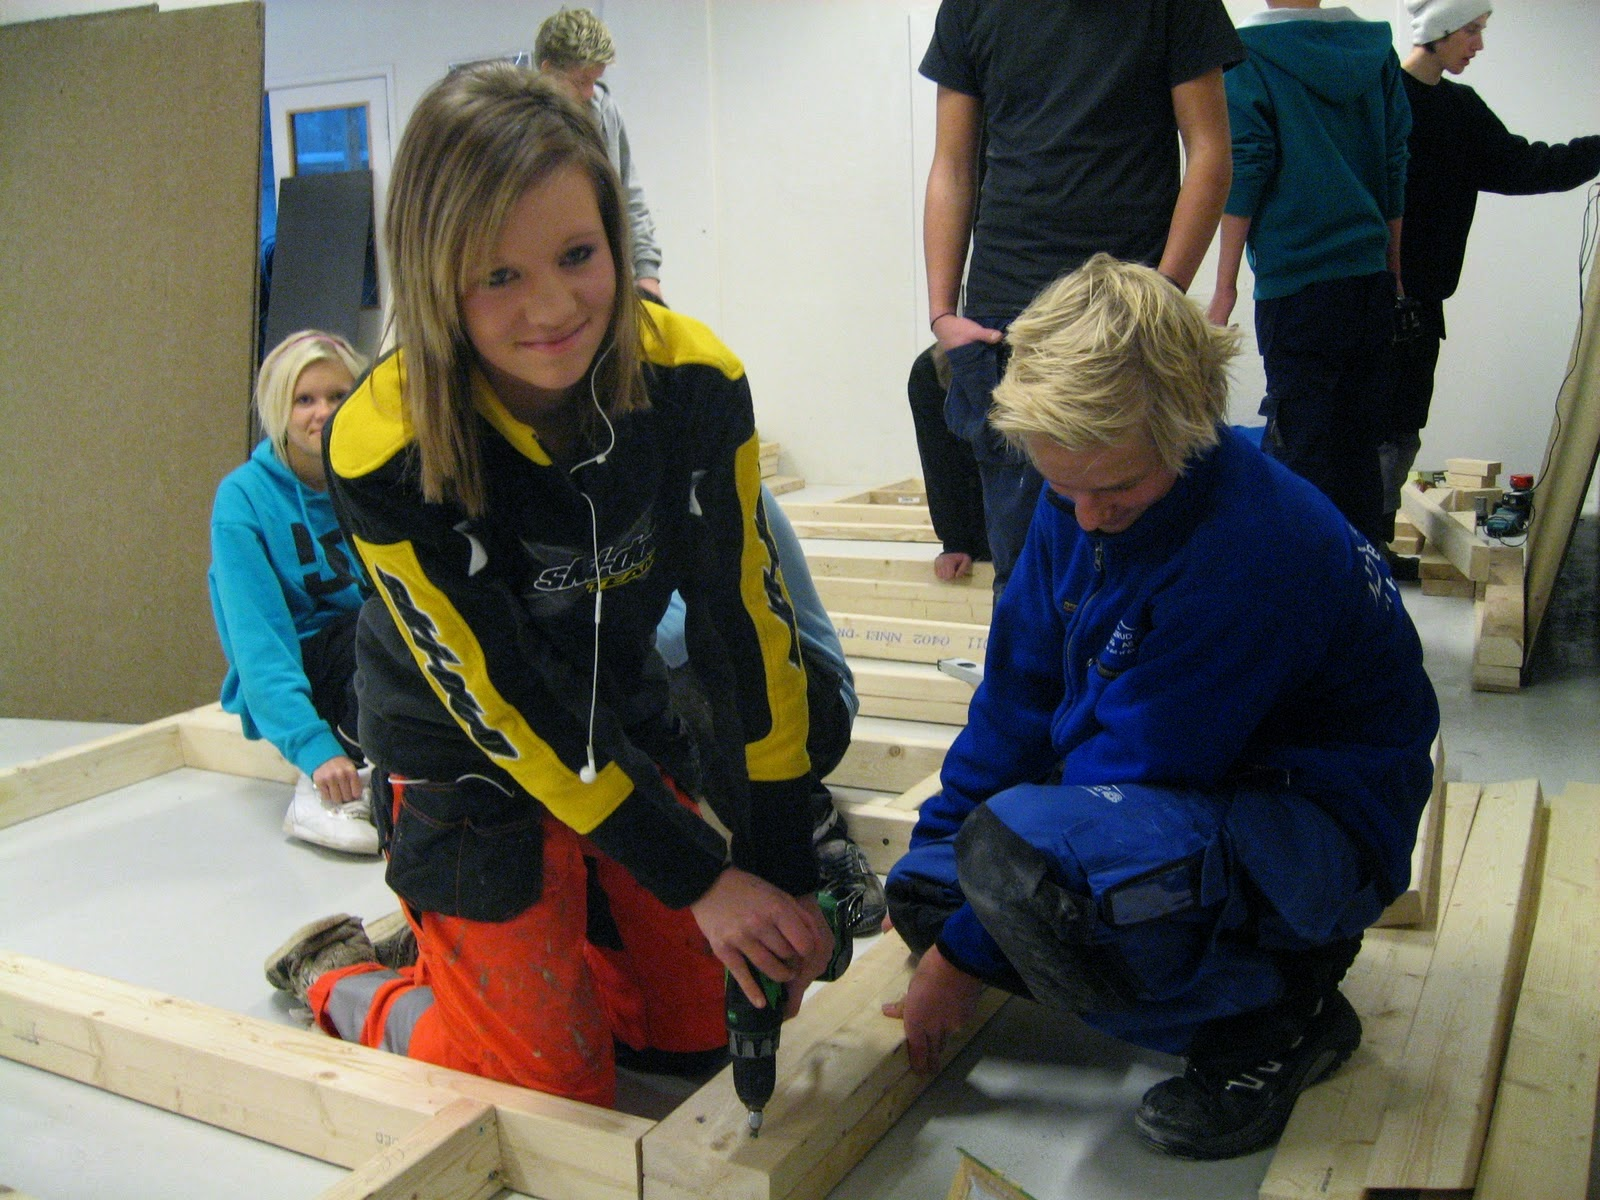 12 jpg today many educationalists recommend having practical subjects in curriculum for students like repairing and some other life skills in addition to routine